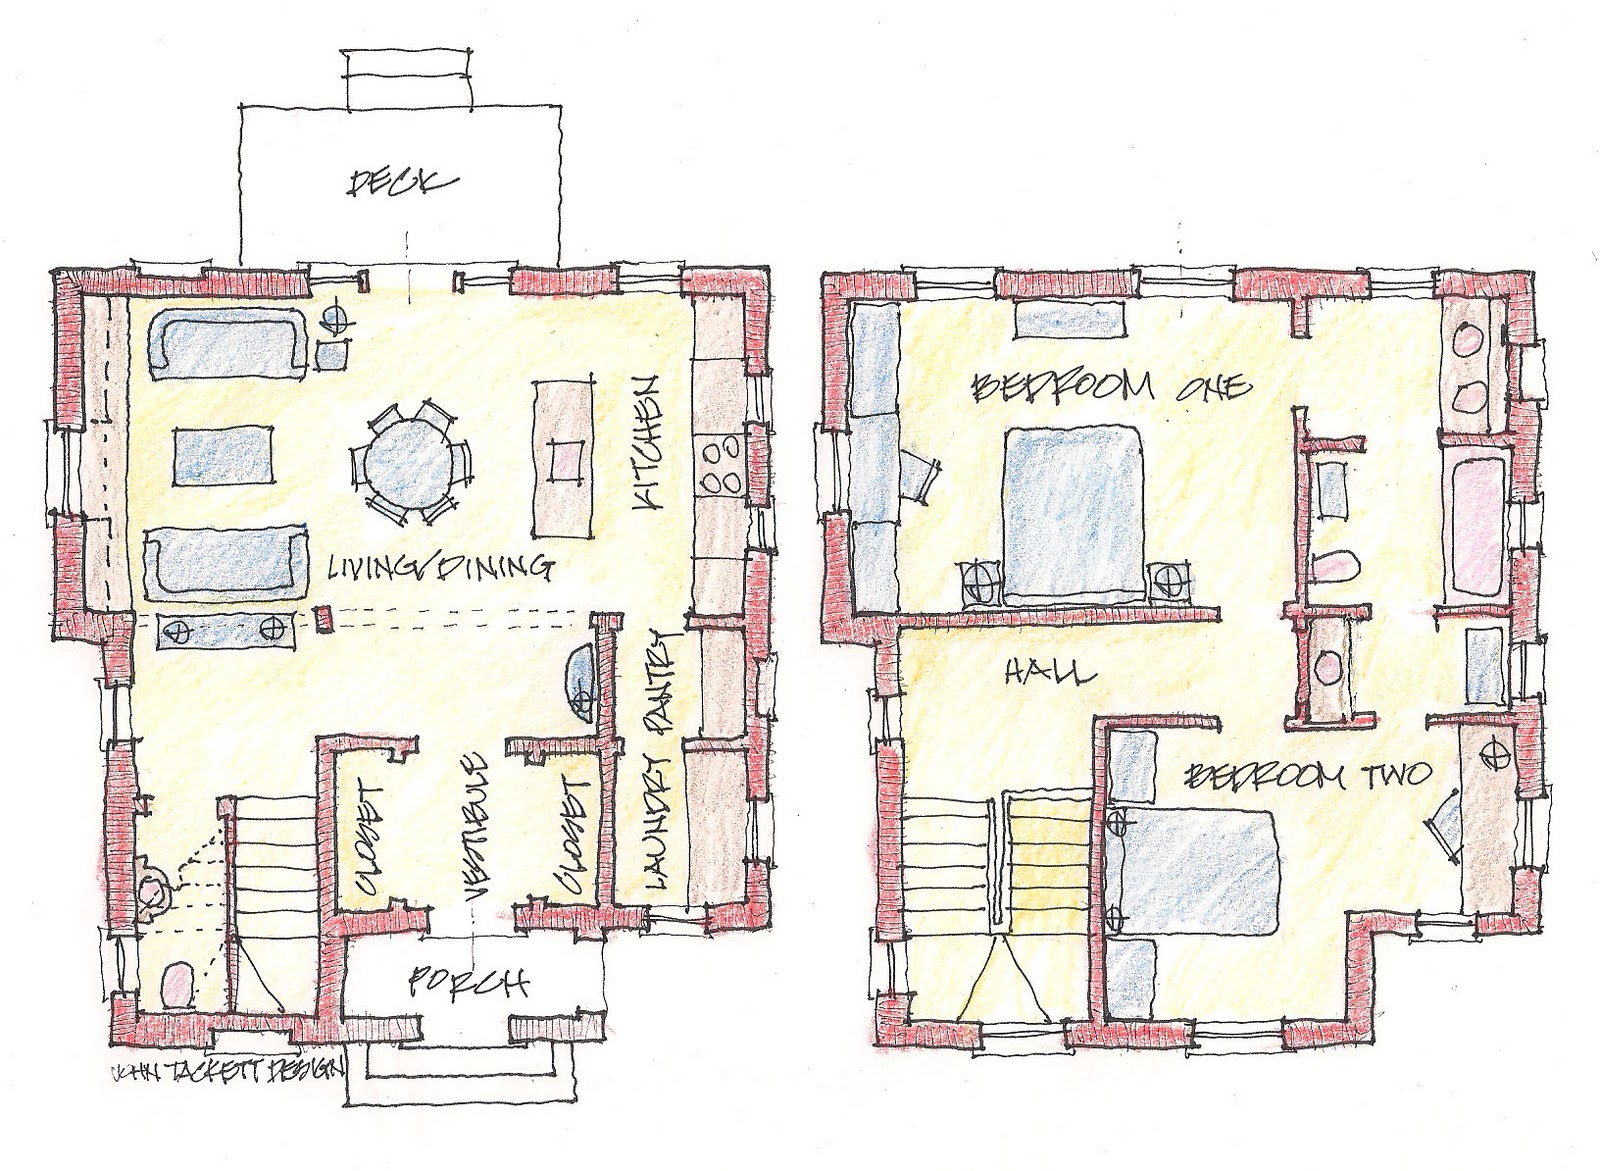 Floor plans for a detached single-family house proposed for the new ...